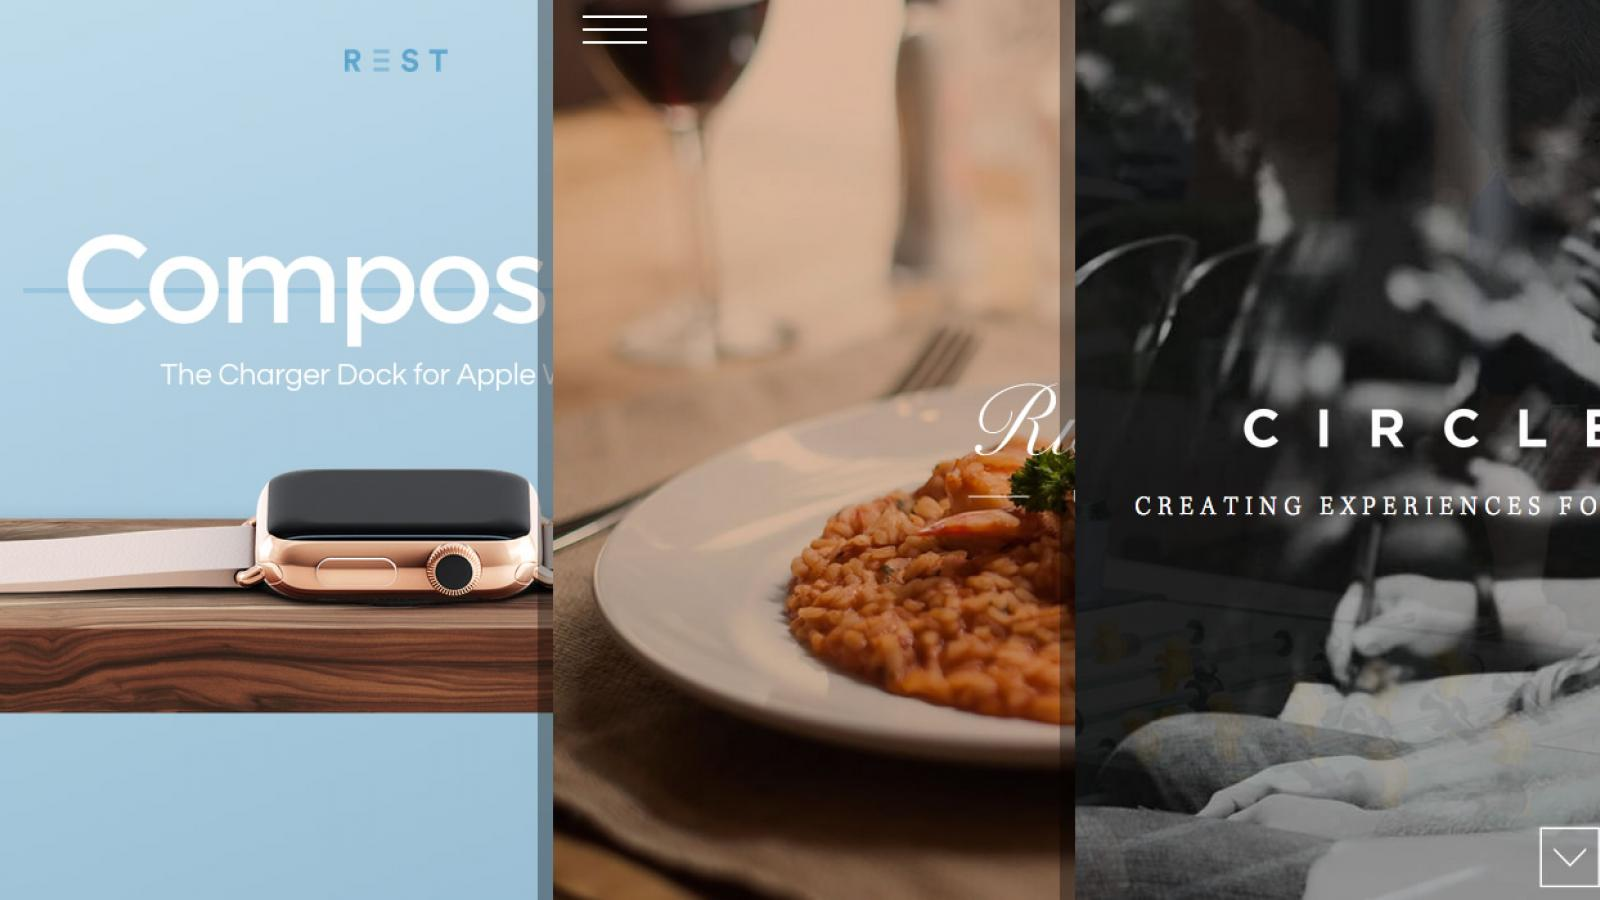 Sites of the Week: MASHVP, Circles Co., Rest and more